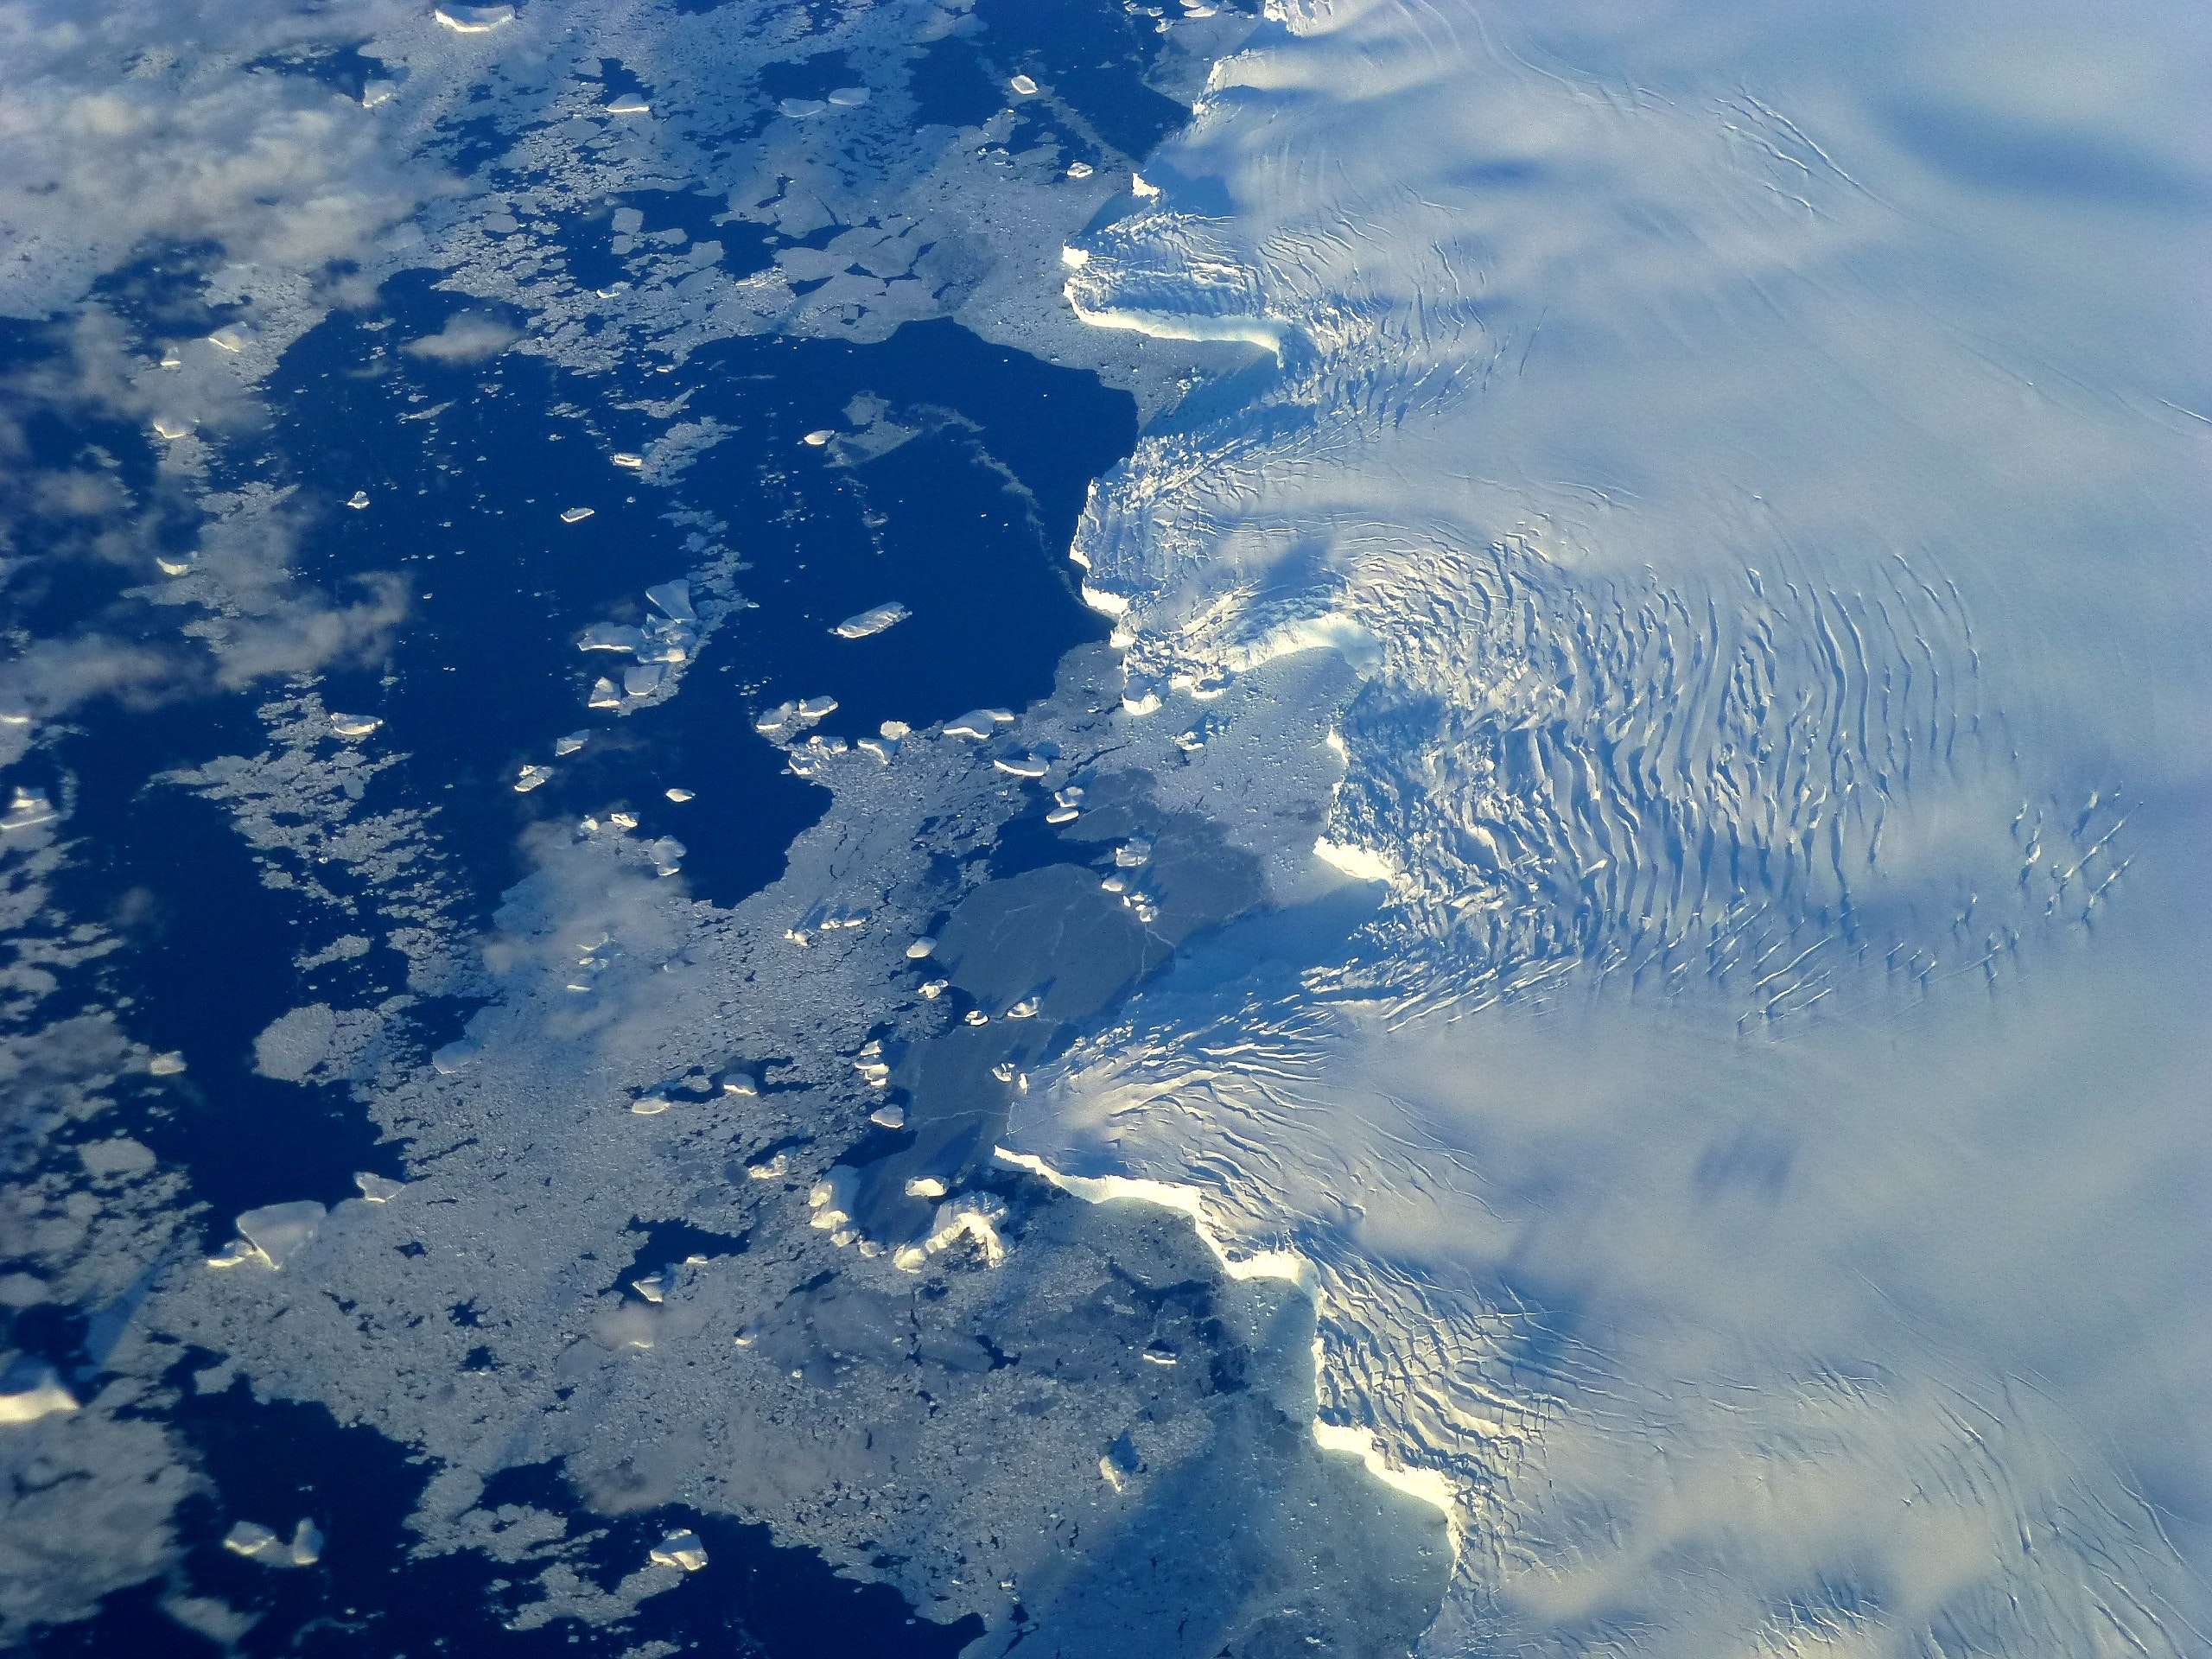 Ocean waves and lack of floating ice can trigger Antarctic ice shelves to disintegrate